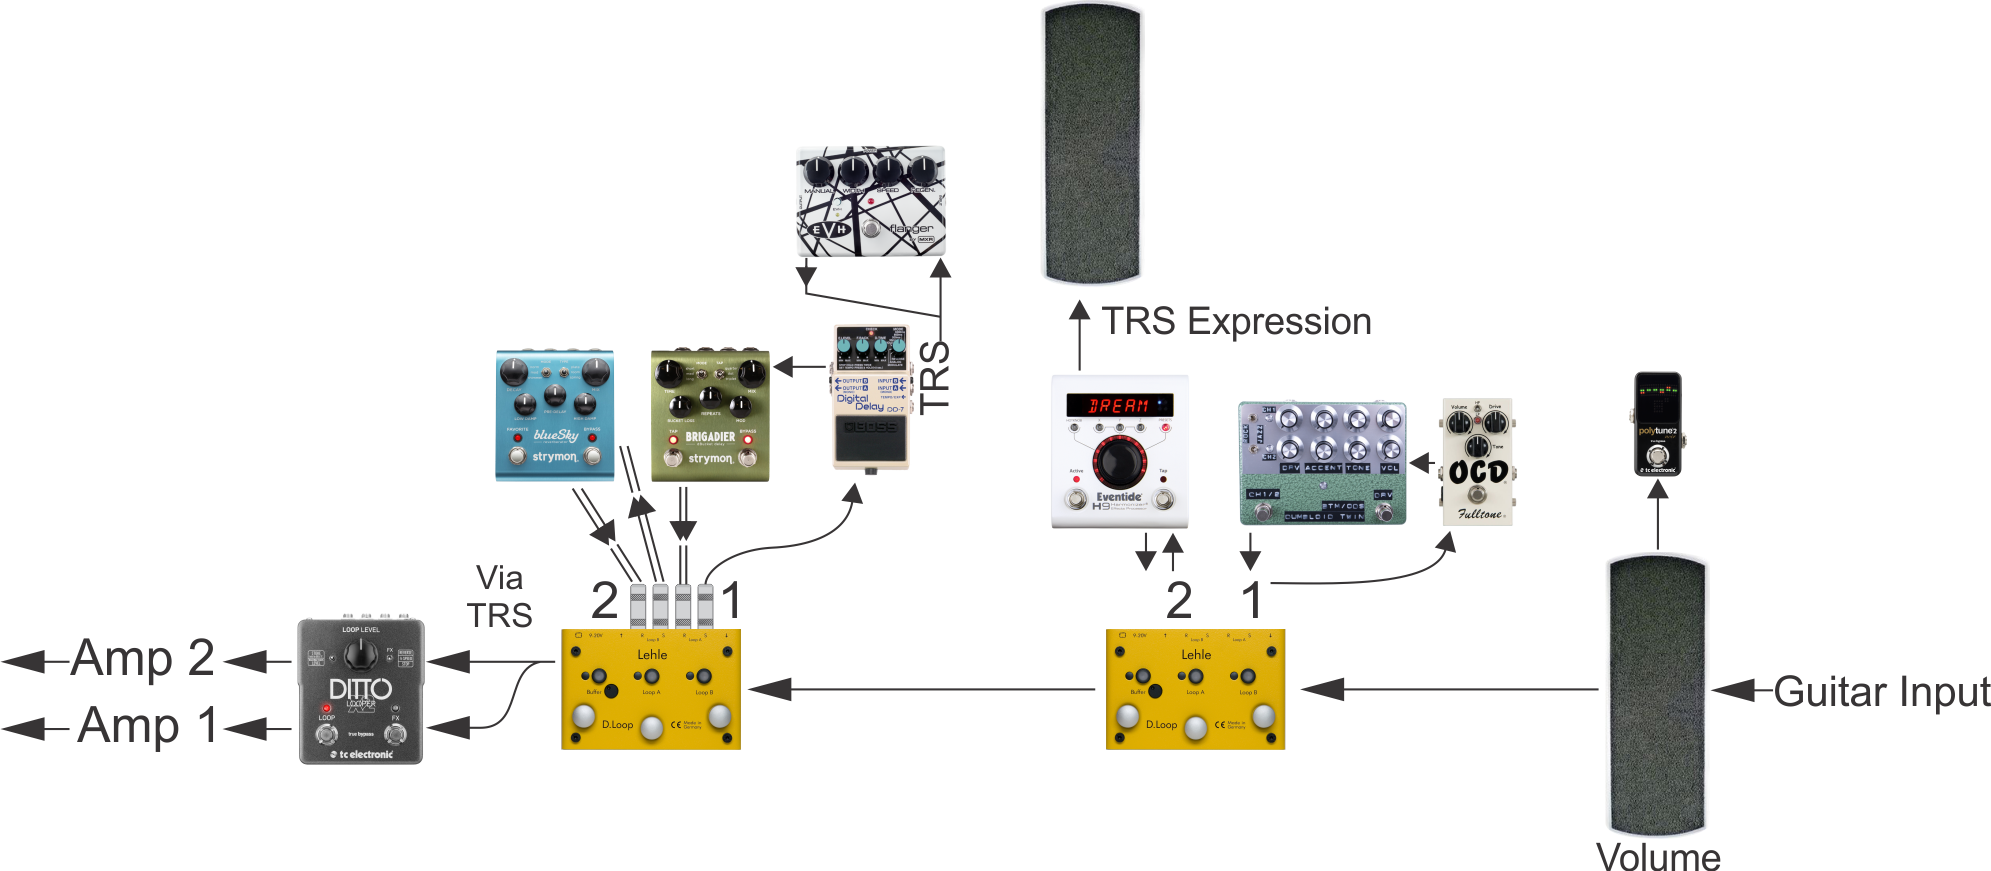 Custom pedalboard recap: Scaling down board size - Helweg Design